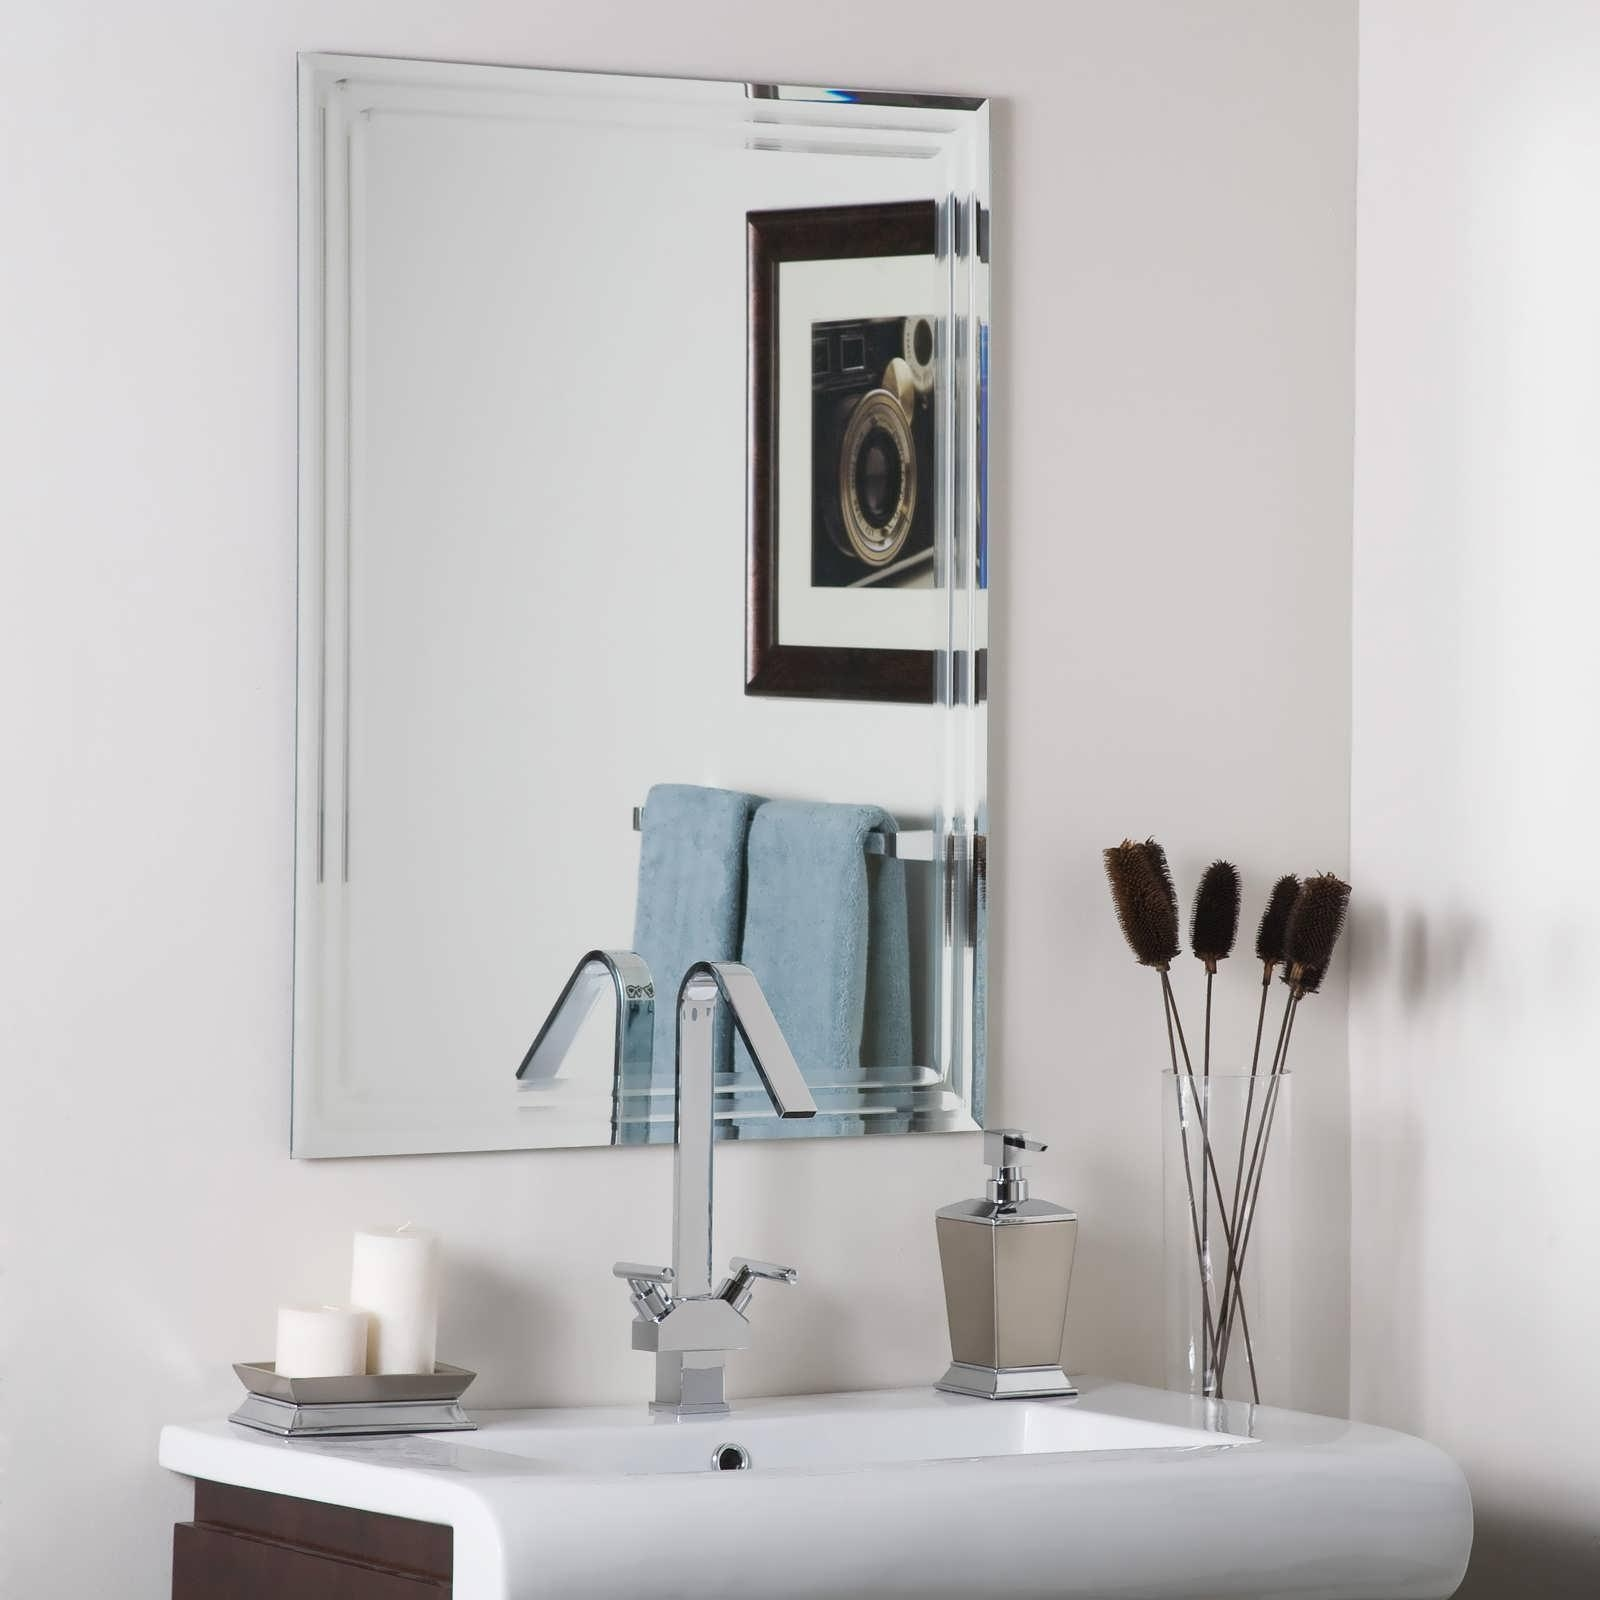 Deco Bathroom Mirror: 20+ Art Deco Frameless Mirror